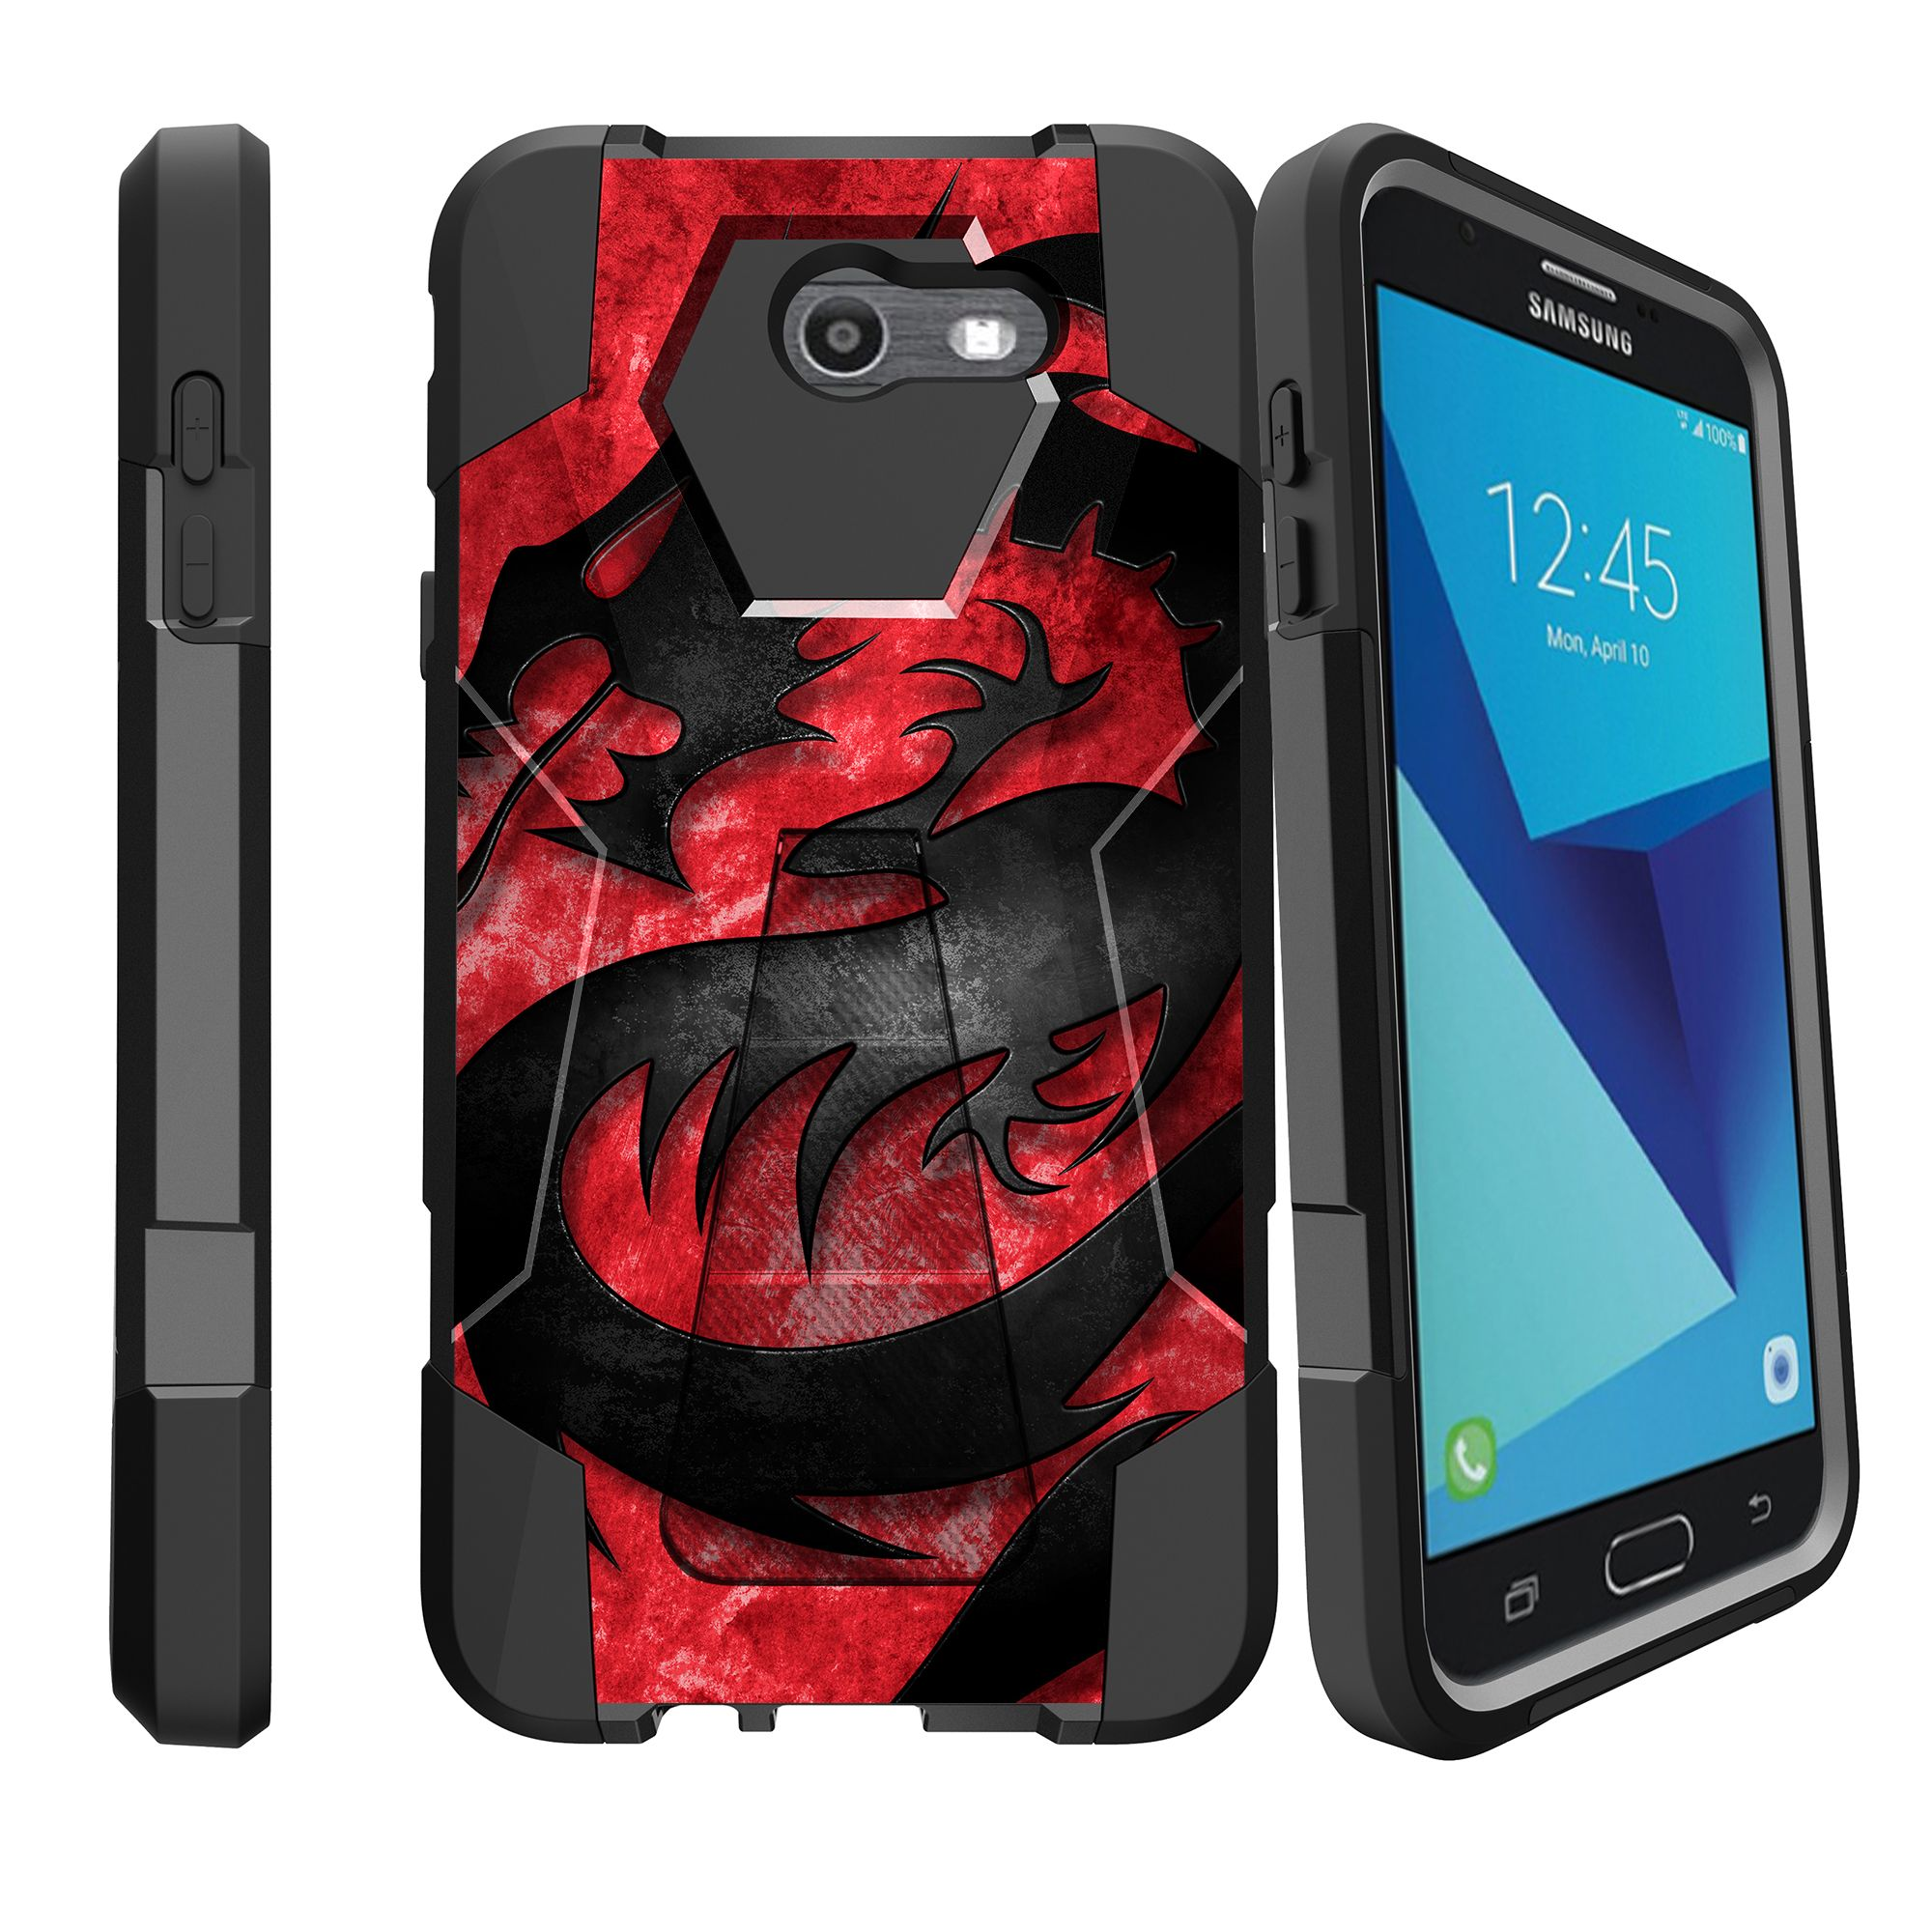 clip Fits Otterbox Wide Selection; Full Protection Defender Rugged Case Iphone 6 /6 Plus Cover